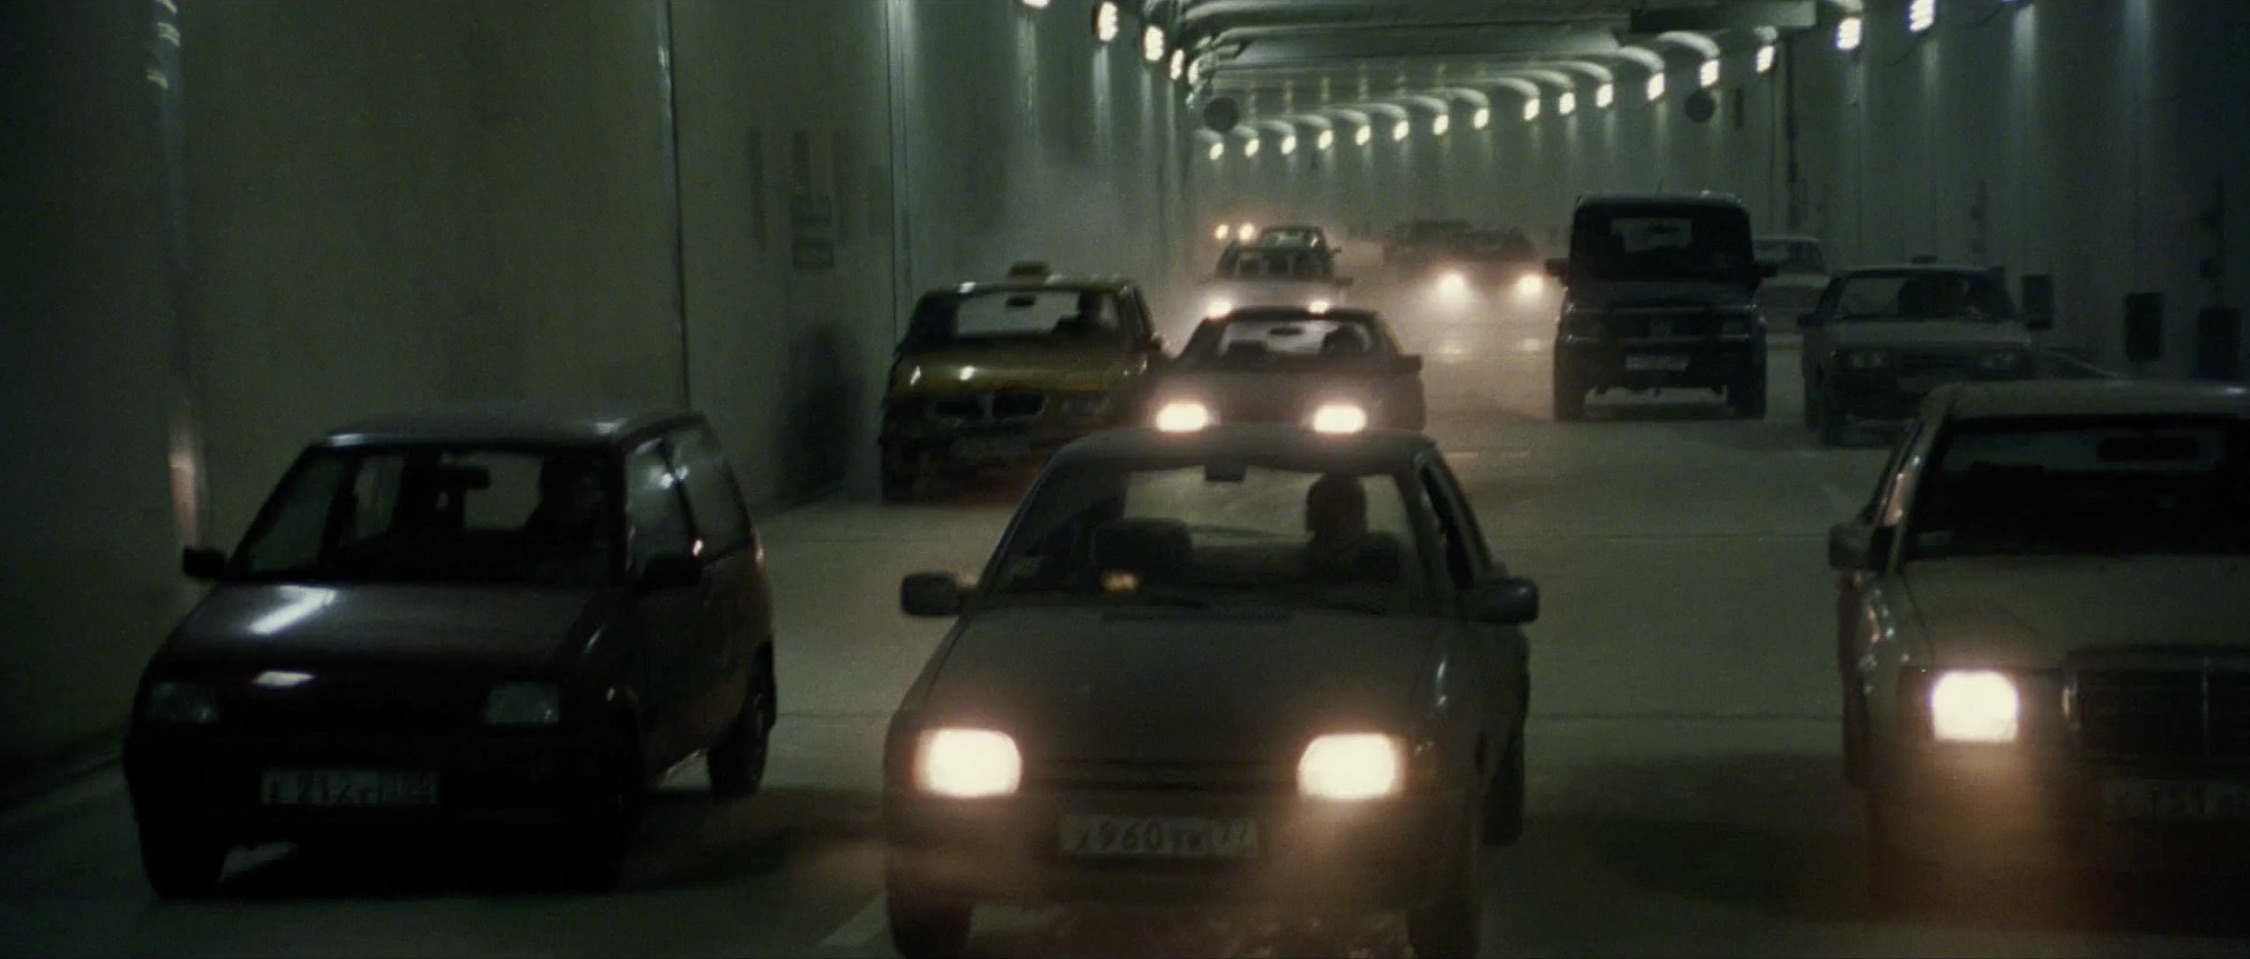 Bourne Supremacy Car Chase Tunnel